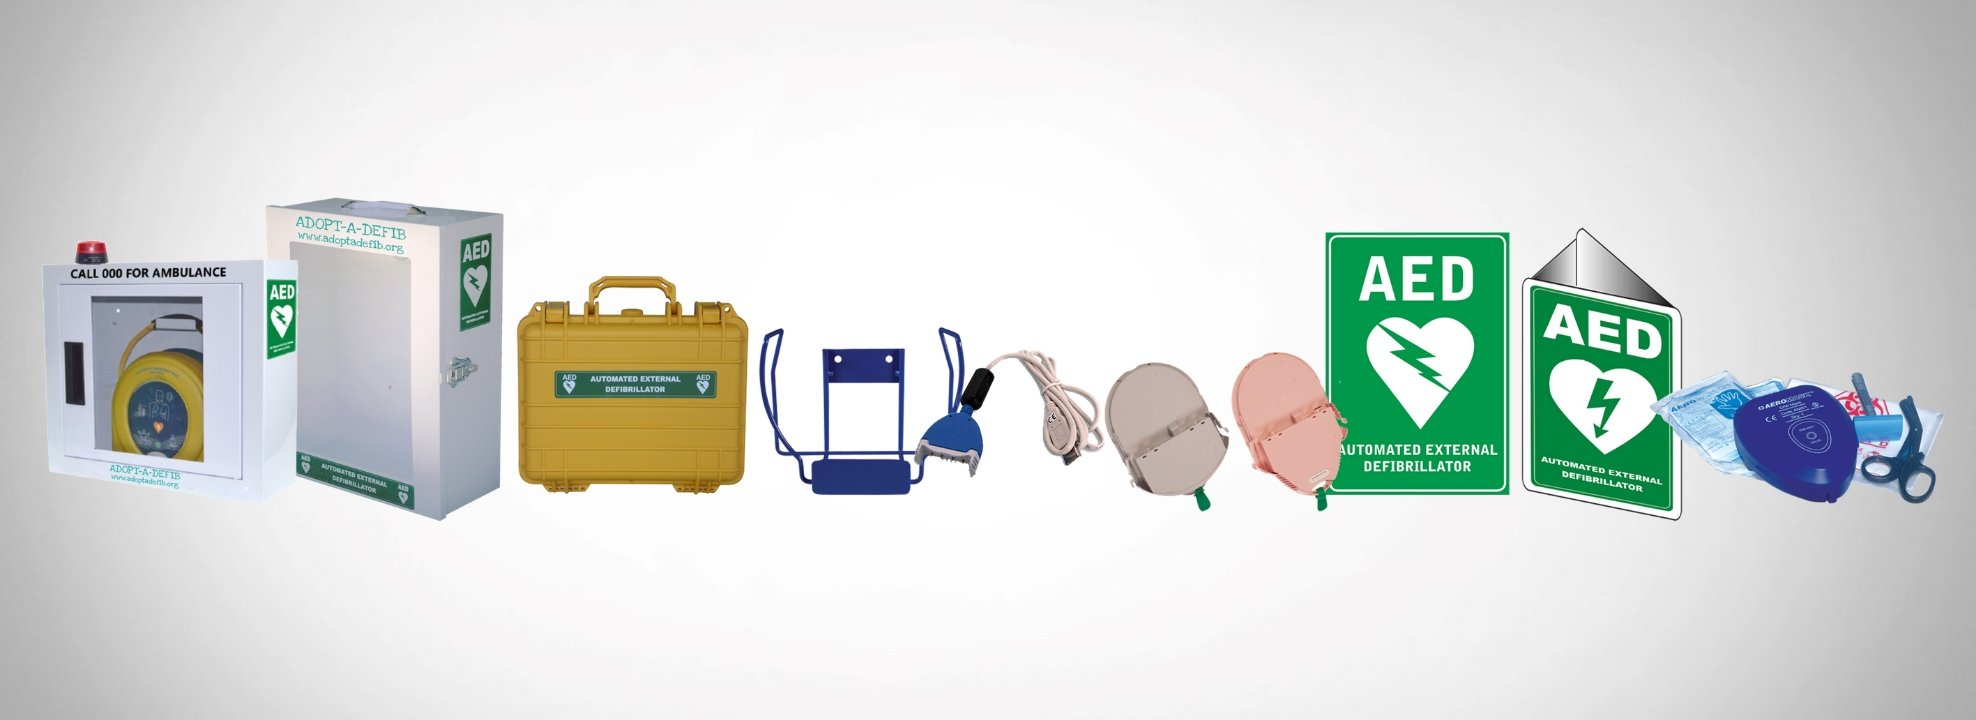 Additional Accessories for AED Package